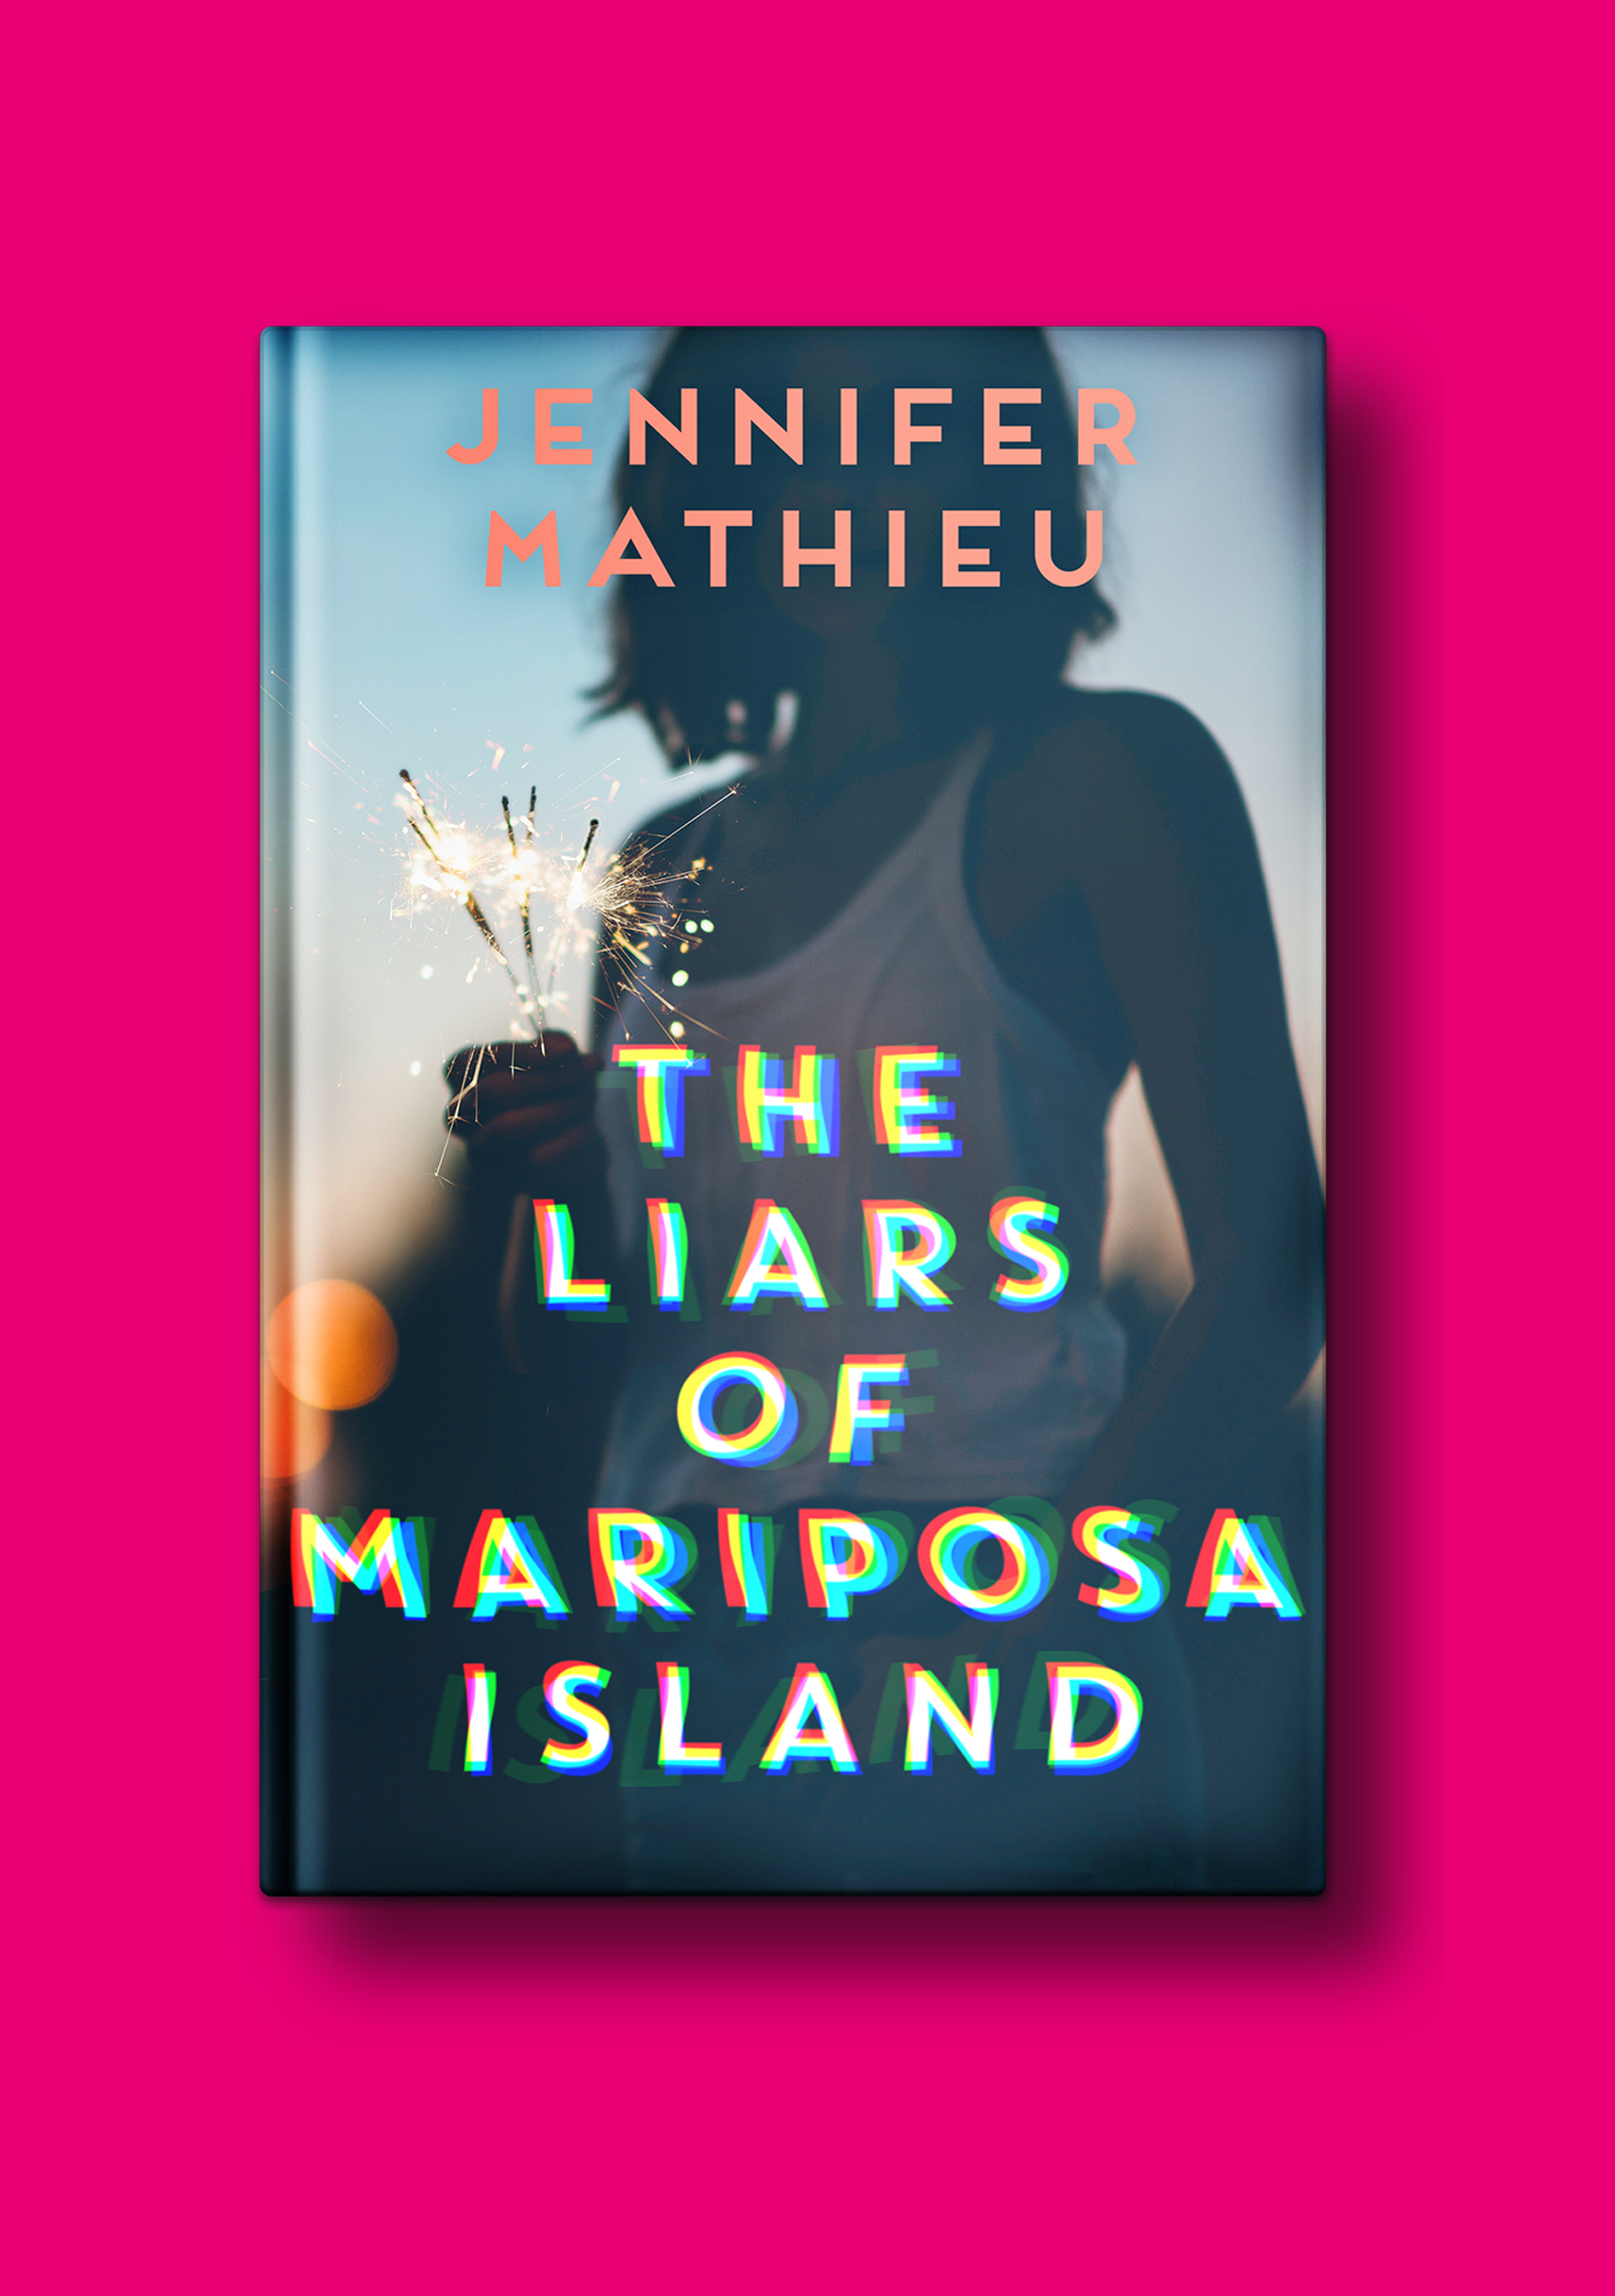 THE LIARS OF MARIPOSA ISLAND - A novel in three voices about the lies families tell to survive.